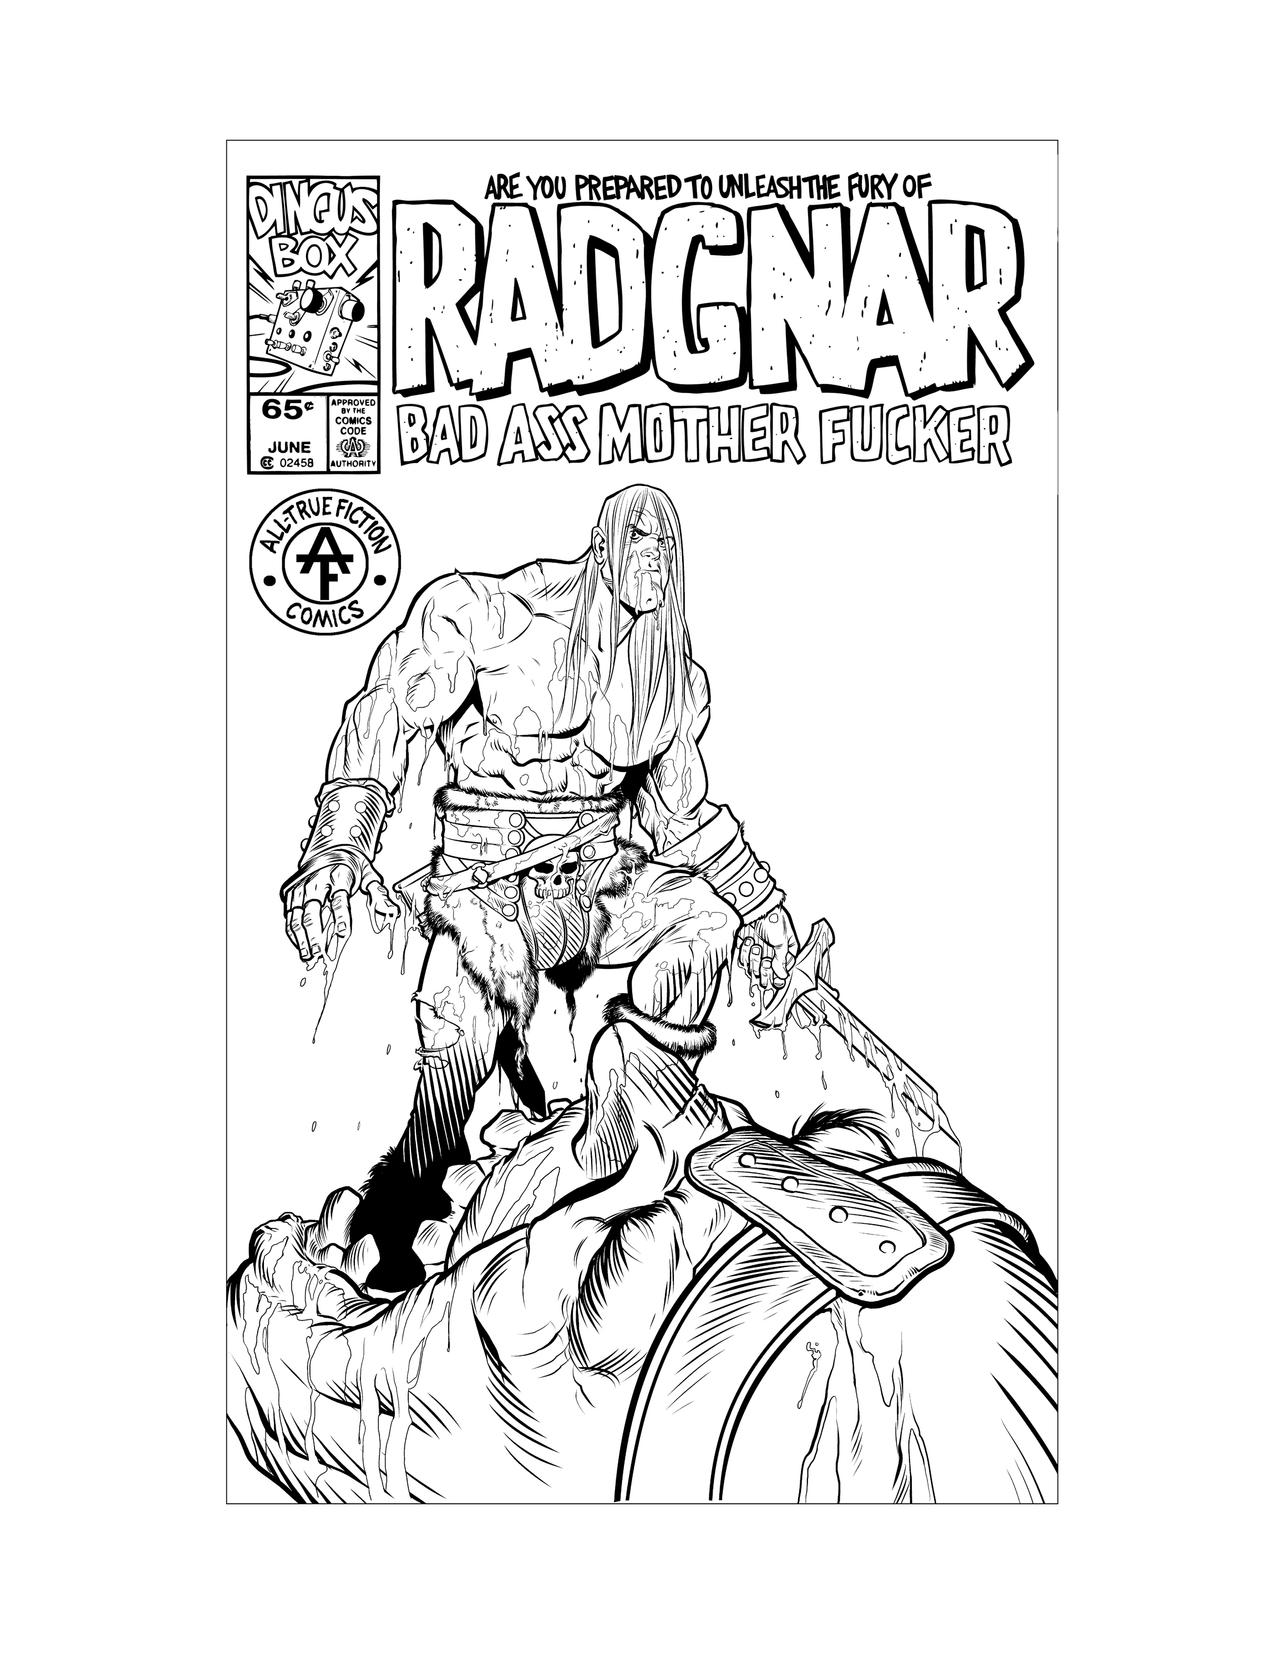 Radgnar the giantkiller inked by angryrooster